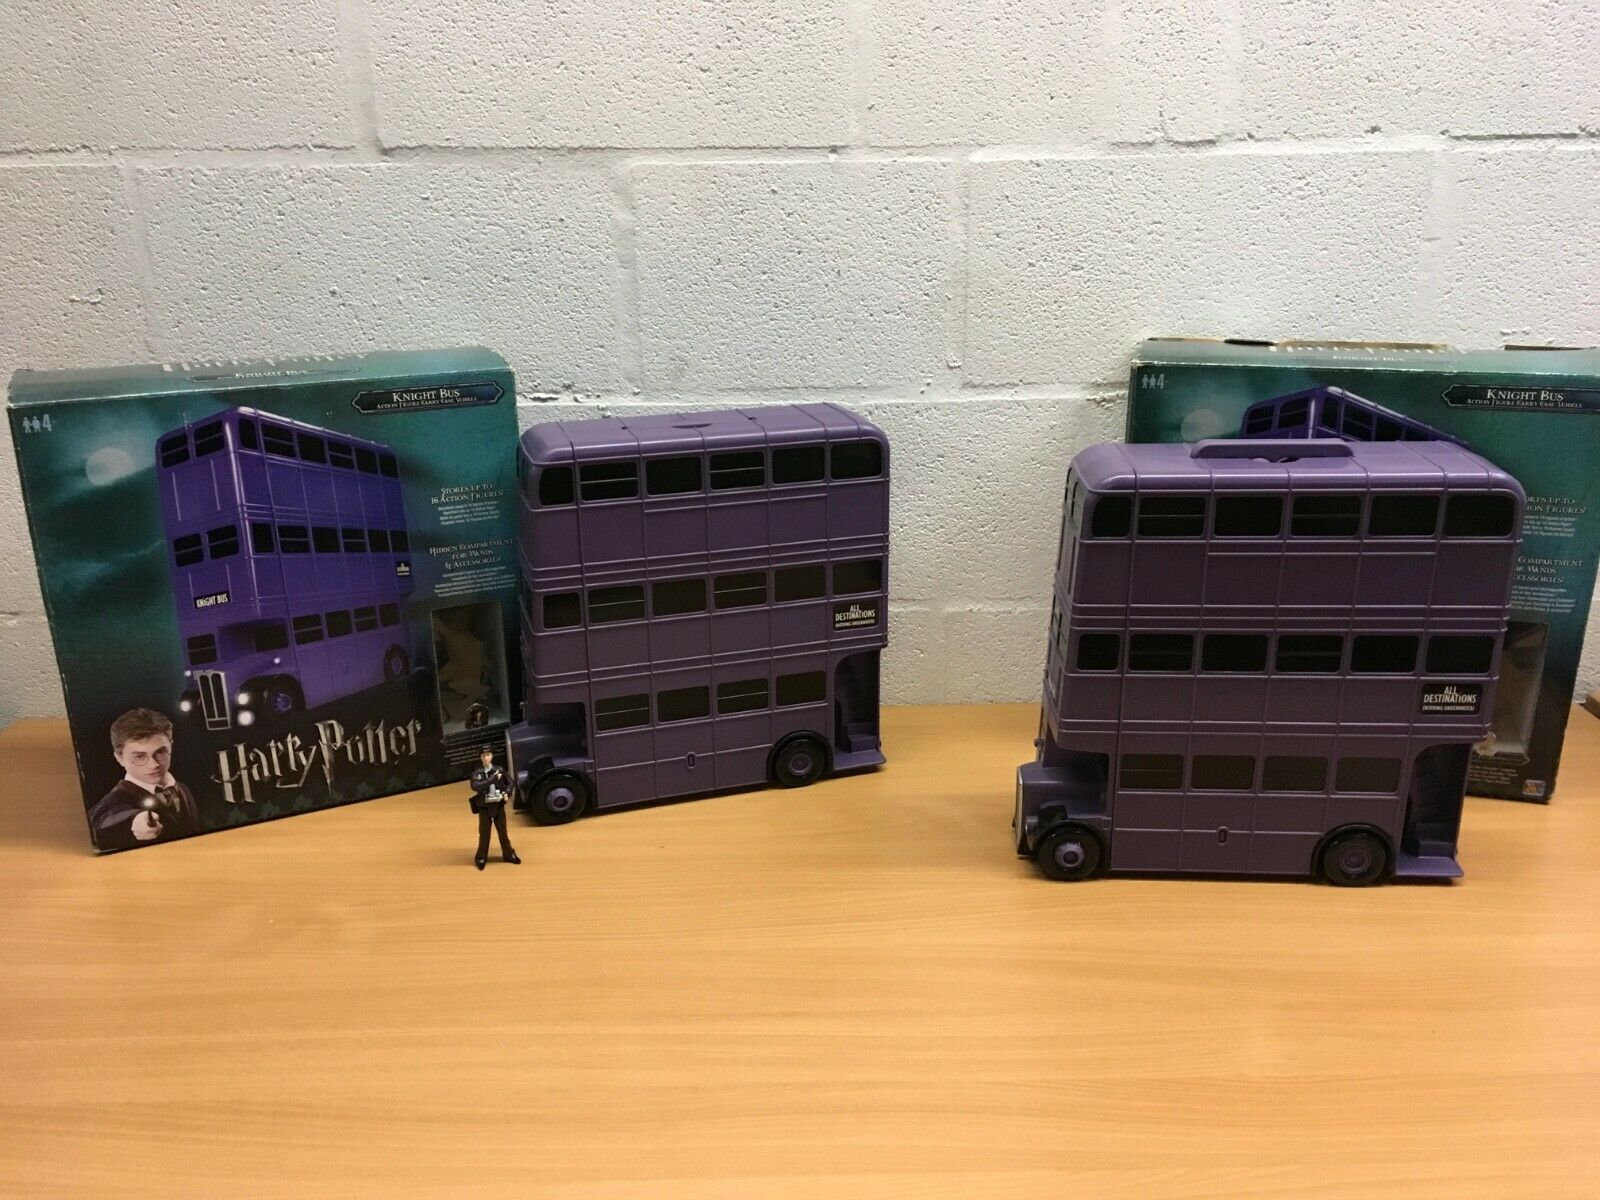 HARRY POTTER KNIGHT BUS ACTION FIGURE CARRY CASE VEHICLE BOXED VGC